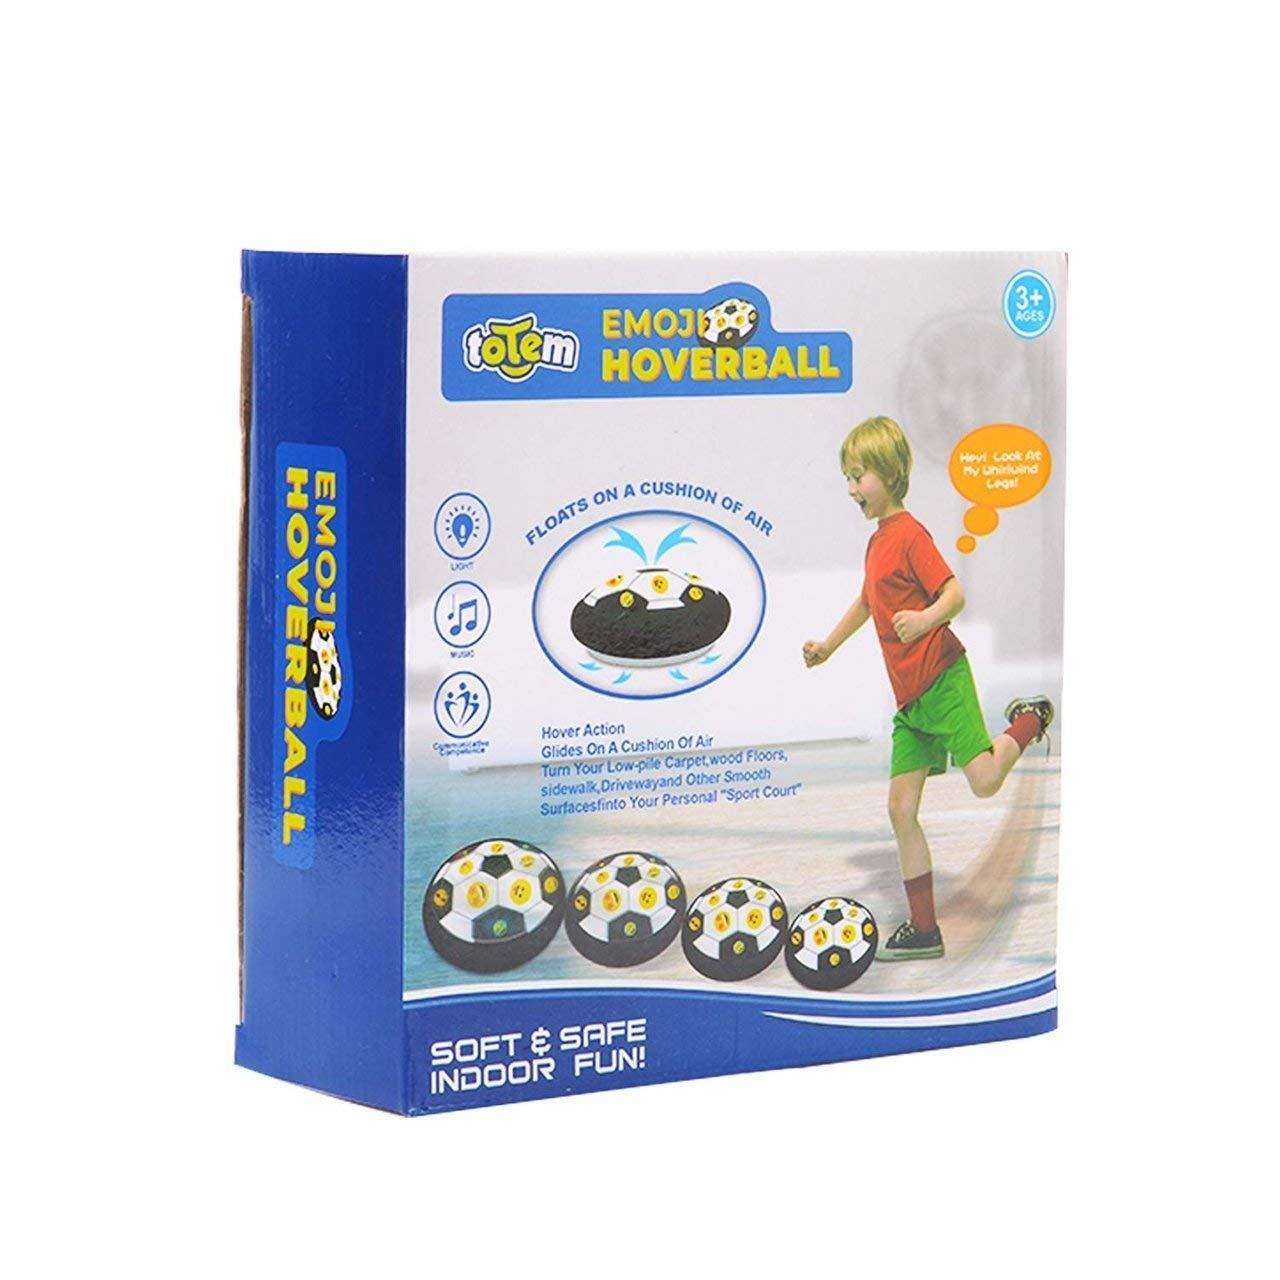 Totem World Emoji Hover Ball Toys for Boys Gifts Renewed Hover Soccer Ball Football Toy with LED Light and Foam Bumpers Indoor Outdoor Game Ideas for 5 6 7 8 11 Year Old Boy Girl Gift.